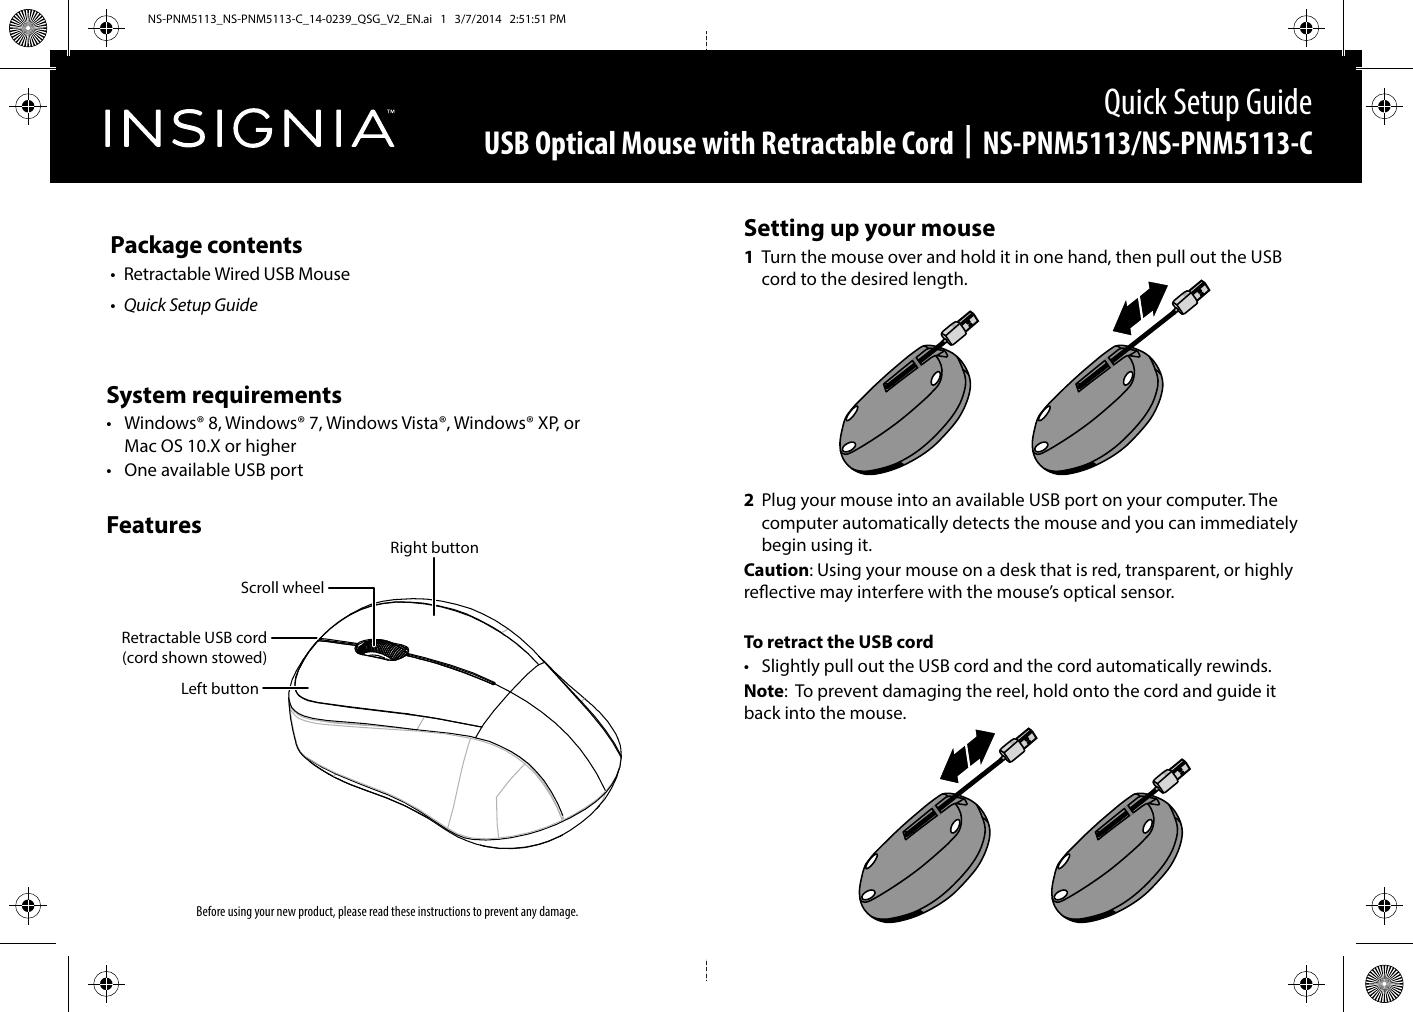 Insignia Ns Pnm5113 C 14 0239 Qsg V2 En User Manual To Usb Optical Mouse Wiring Diagram The 720515e6 Dec5 4bf5 Be71 A0f64fe69ff6